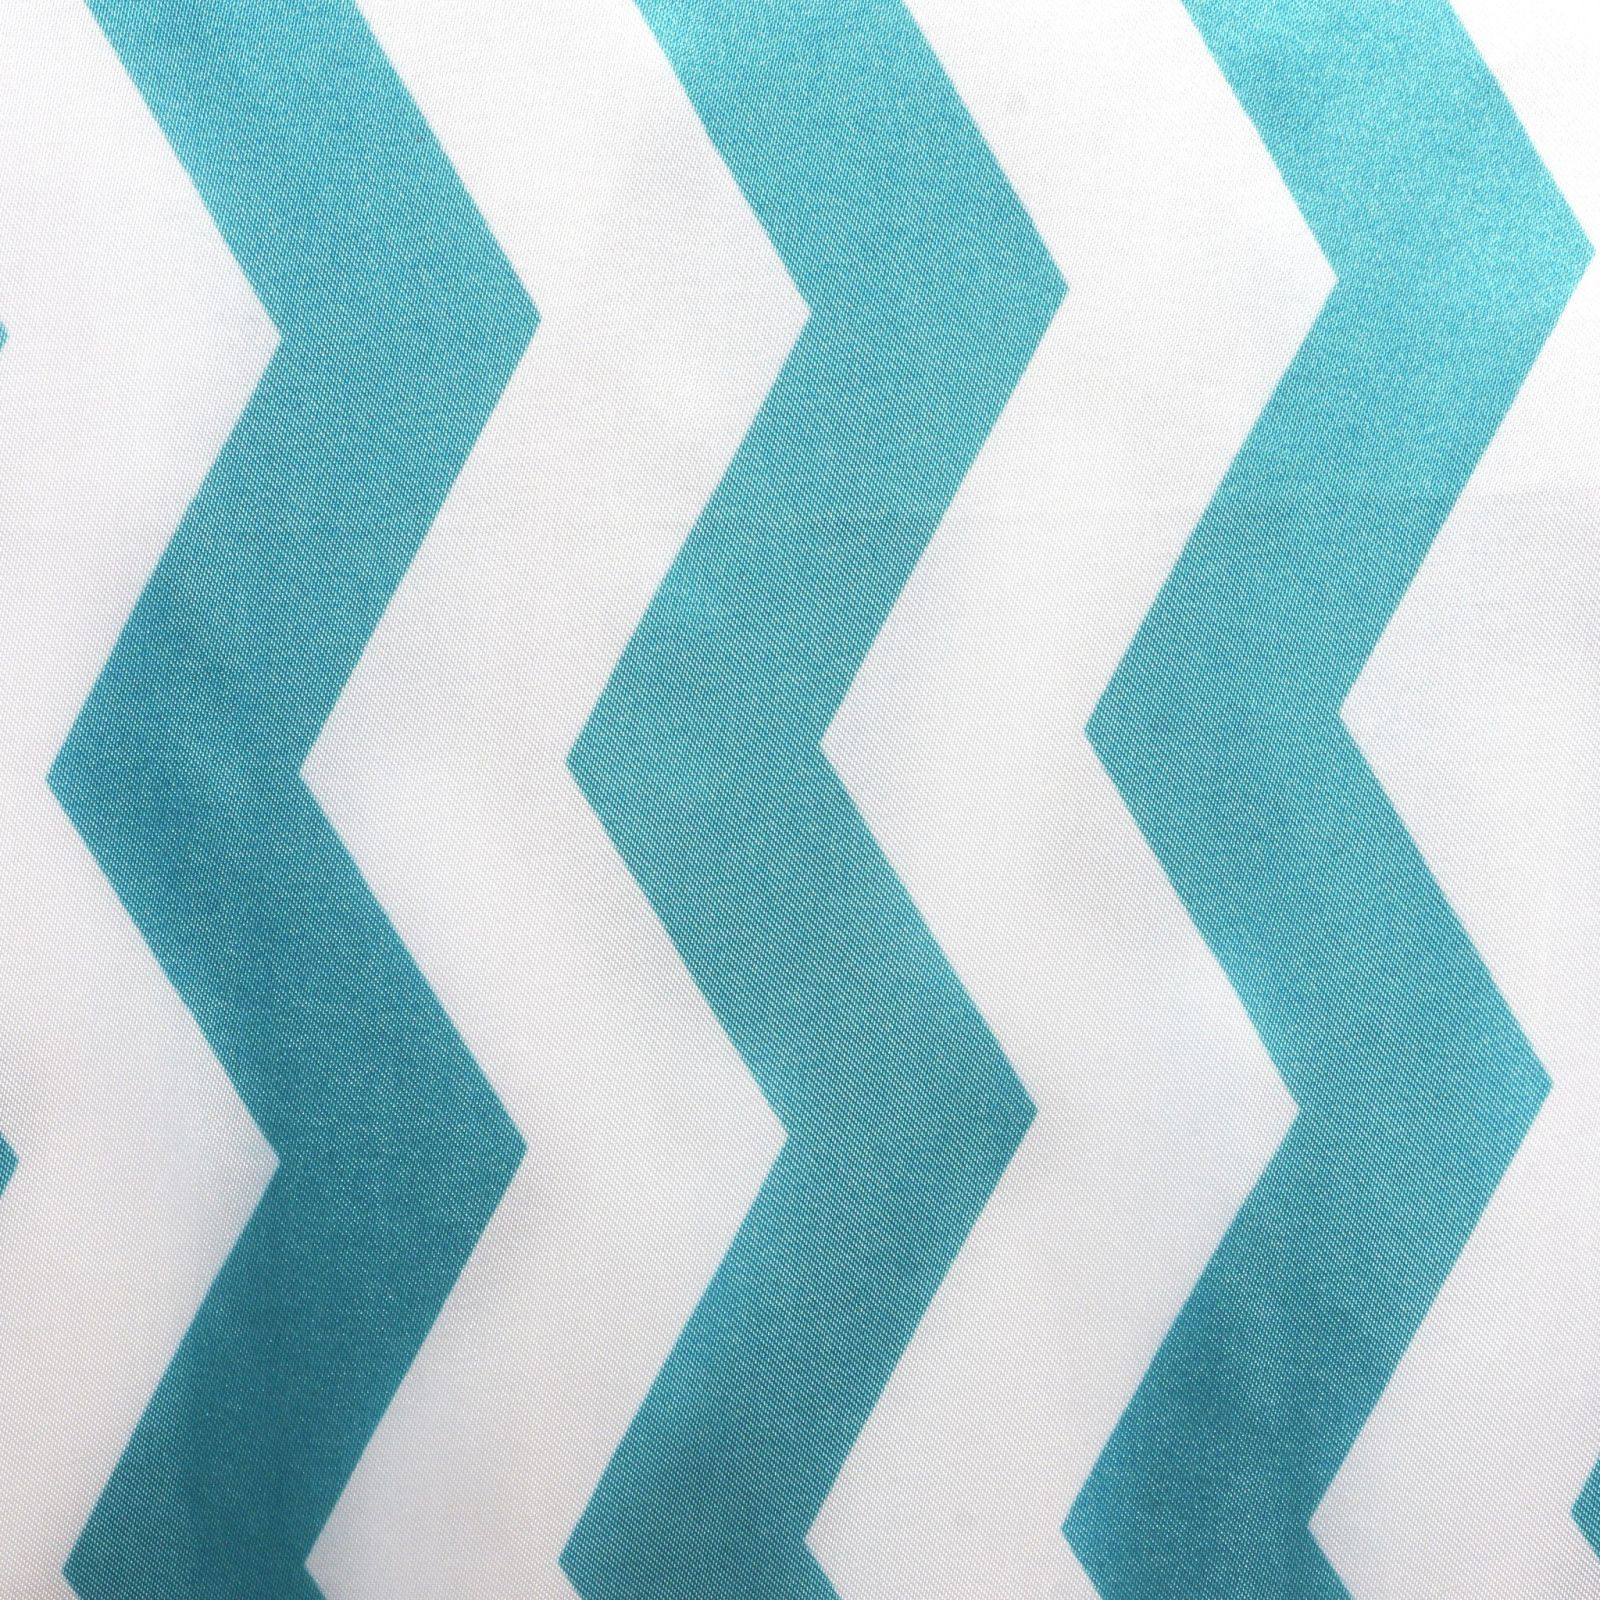 Jazzed Up Chevron Table Runners Turquoise ...